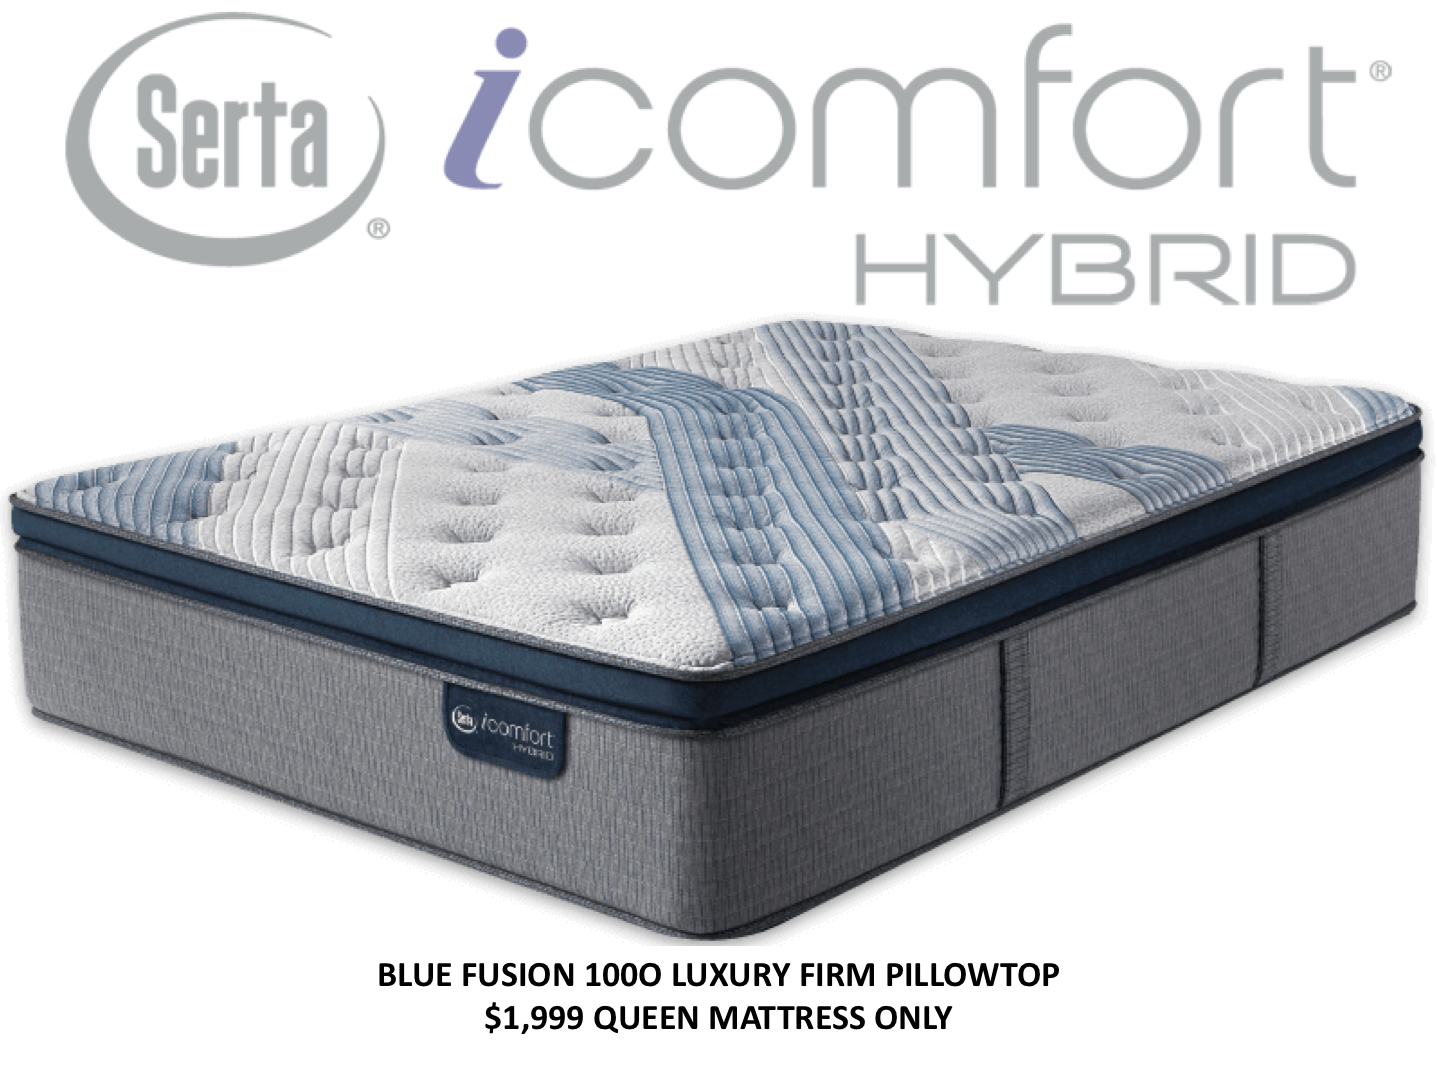 Blue Fusion 1000 Luxury Firm Pillowtop